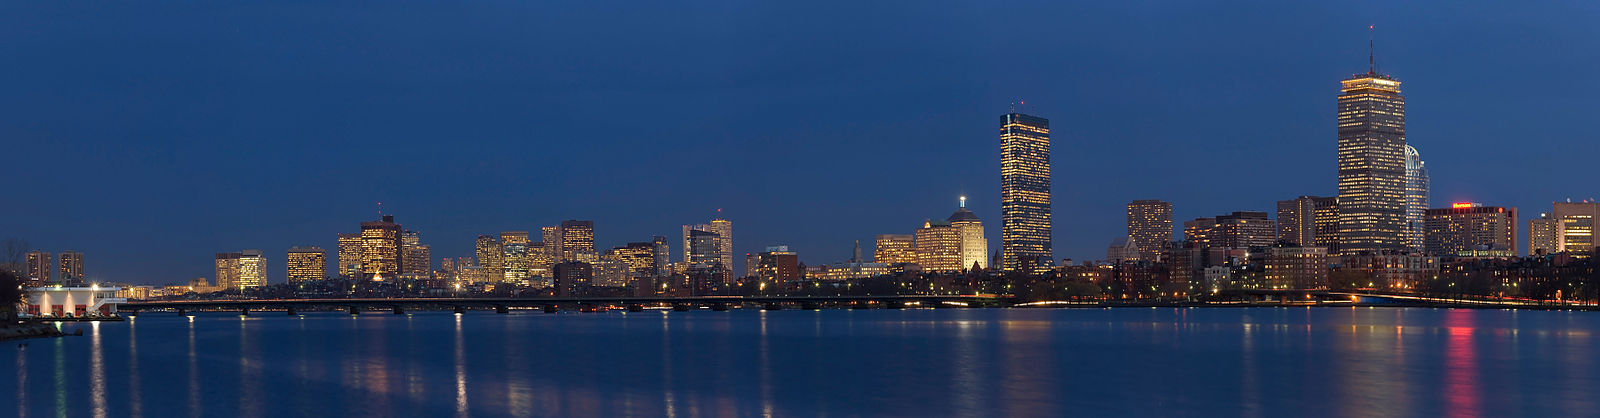 The Boston skyline from across the Charles River in Cambridge.